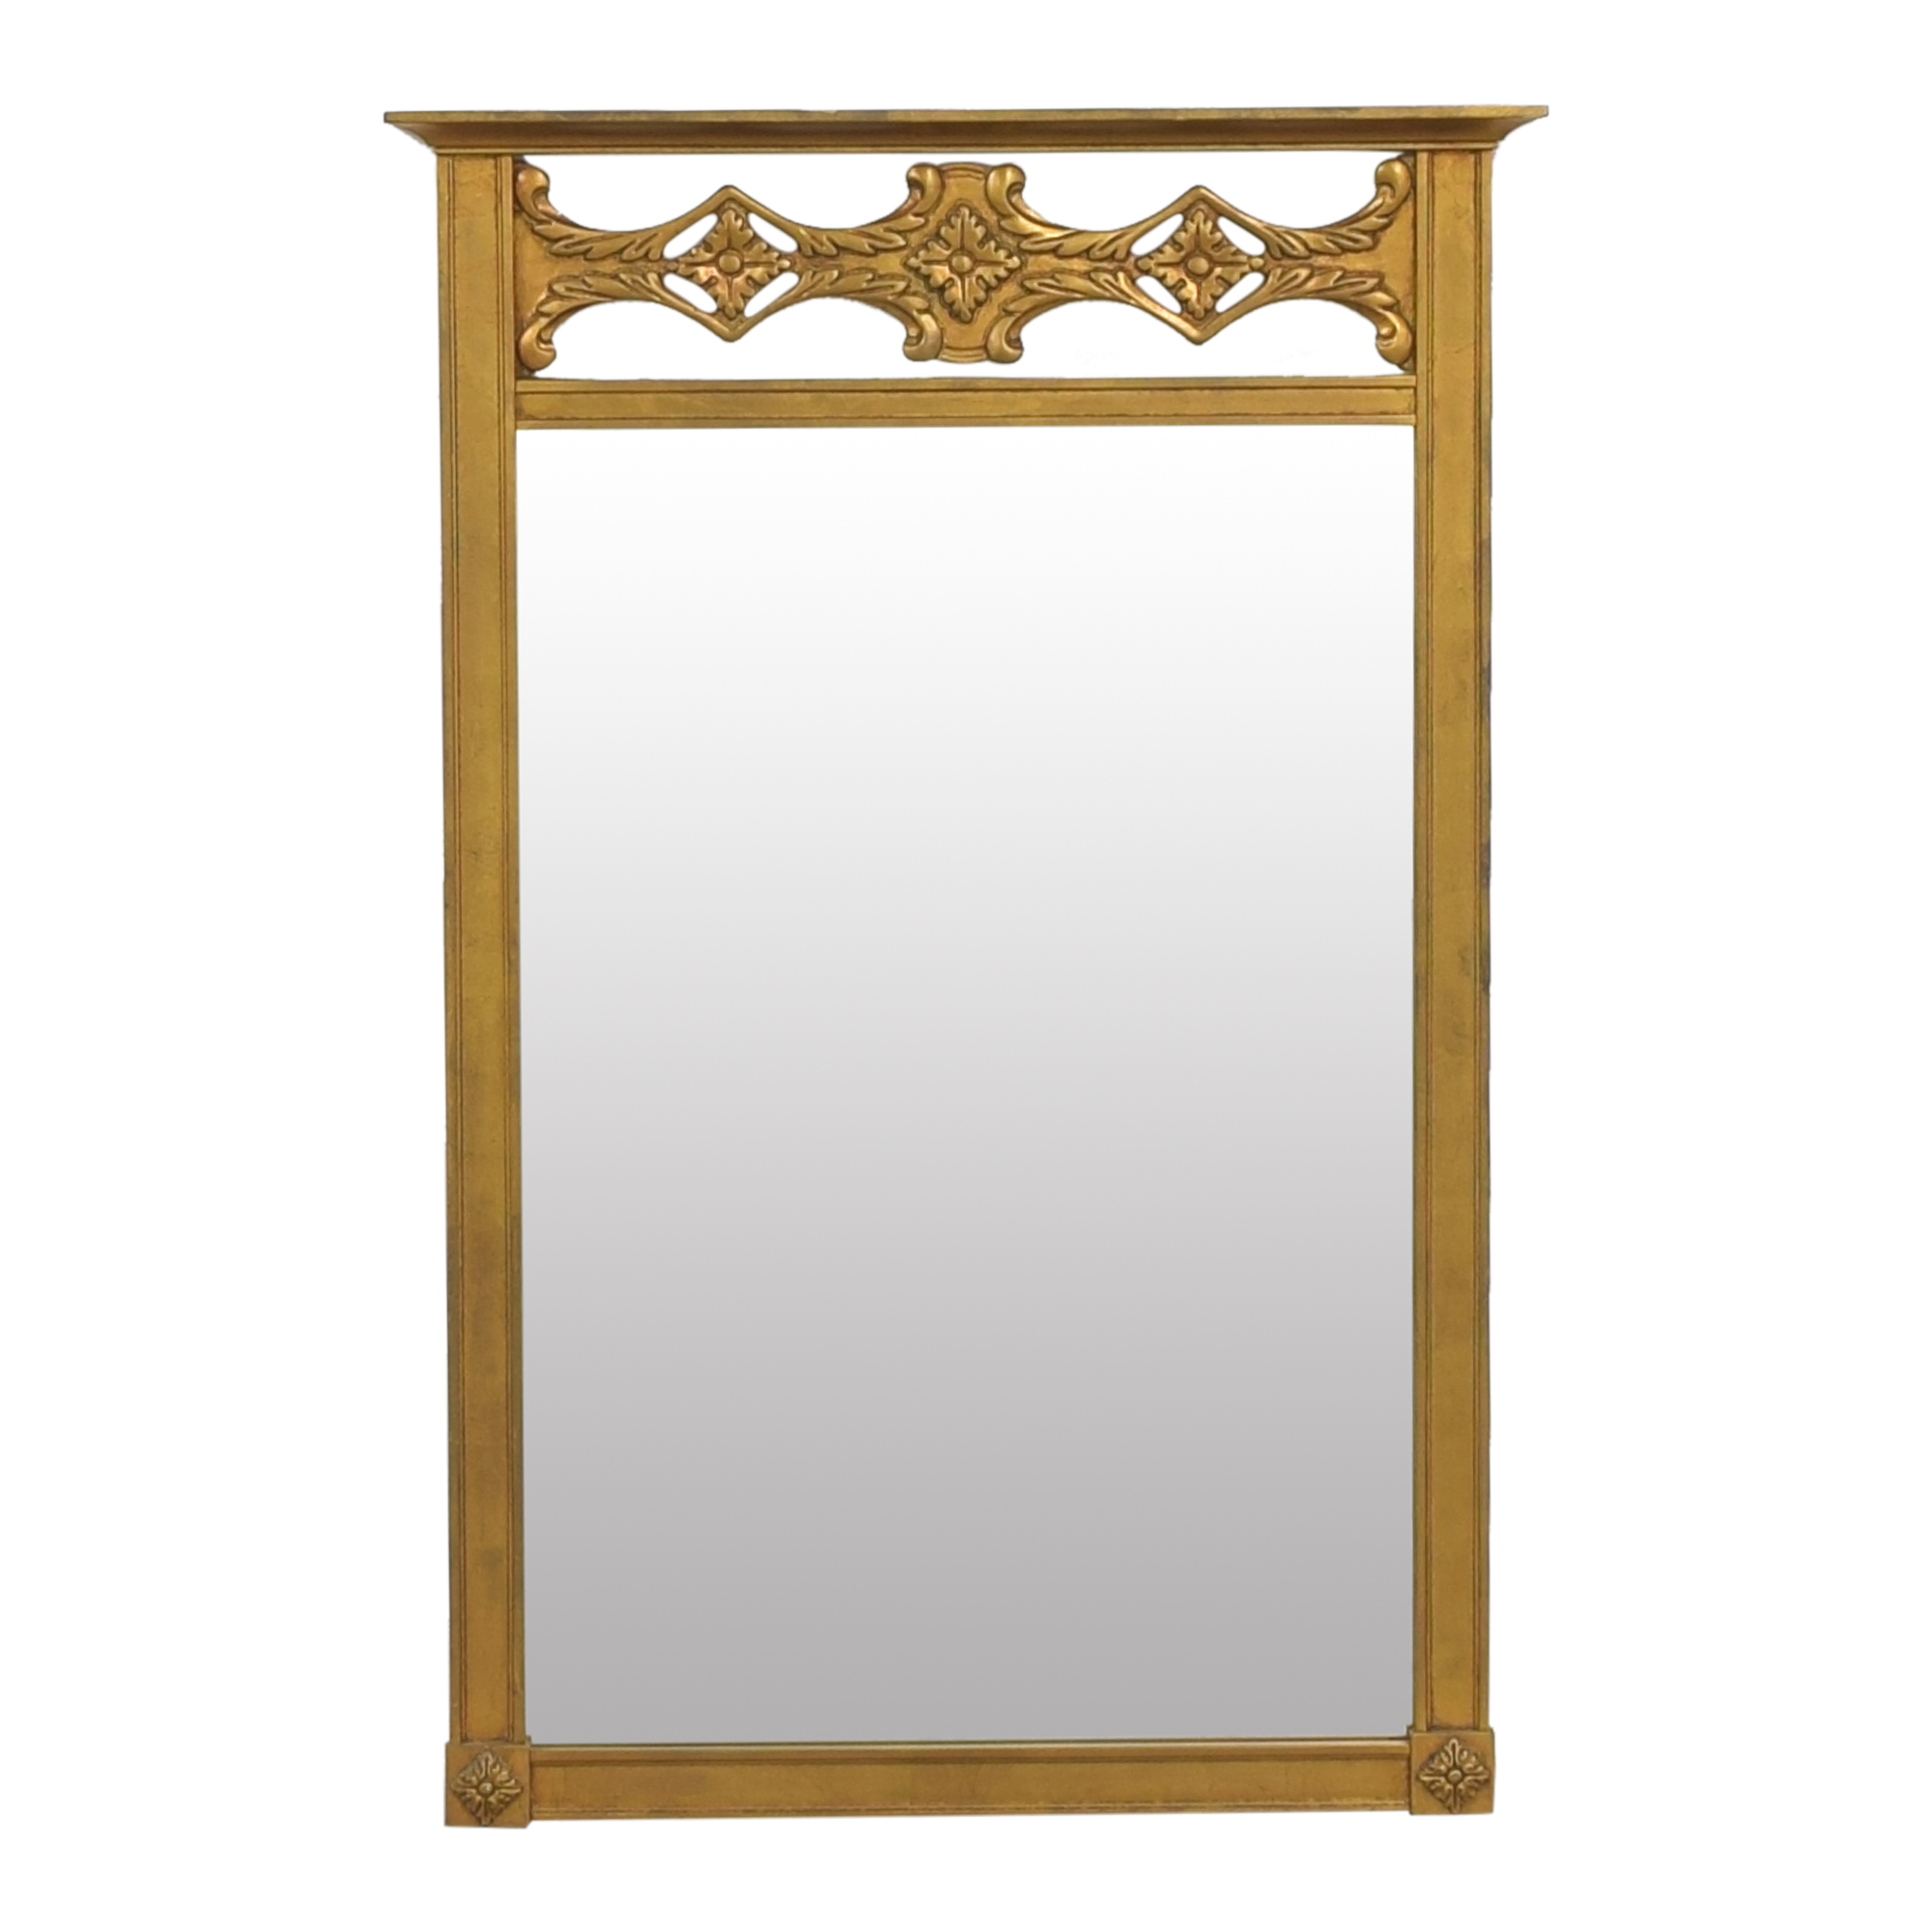 shop Decorative Framed Wall Mirror